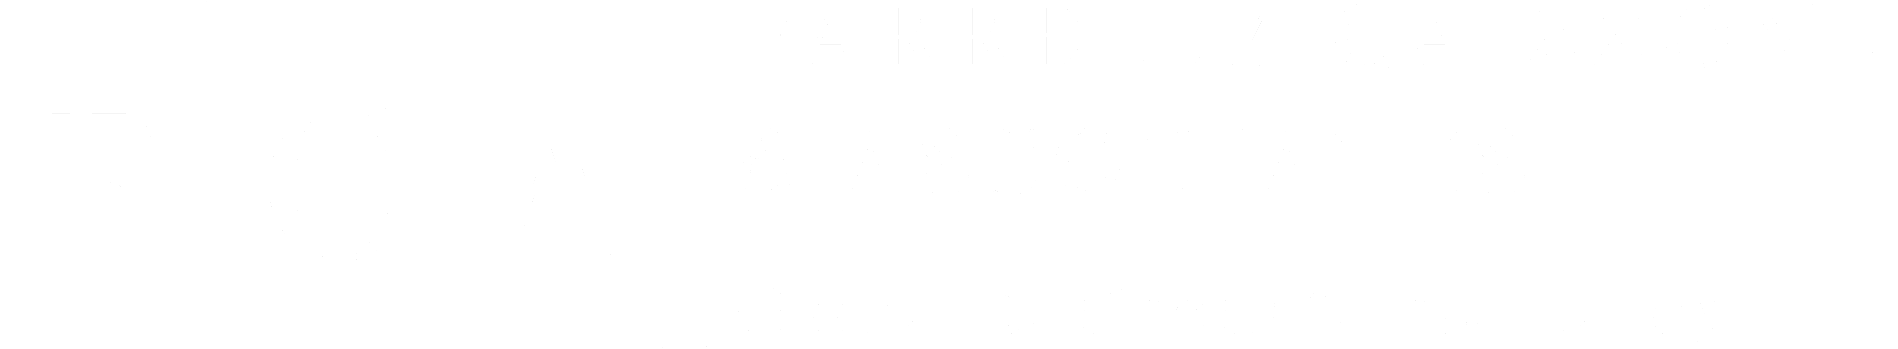 Farrelly-Caizzone & Associates